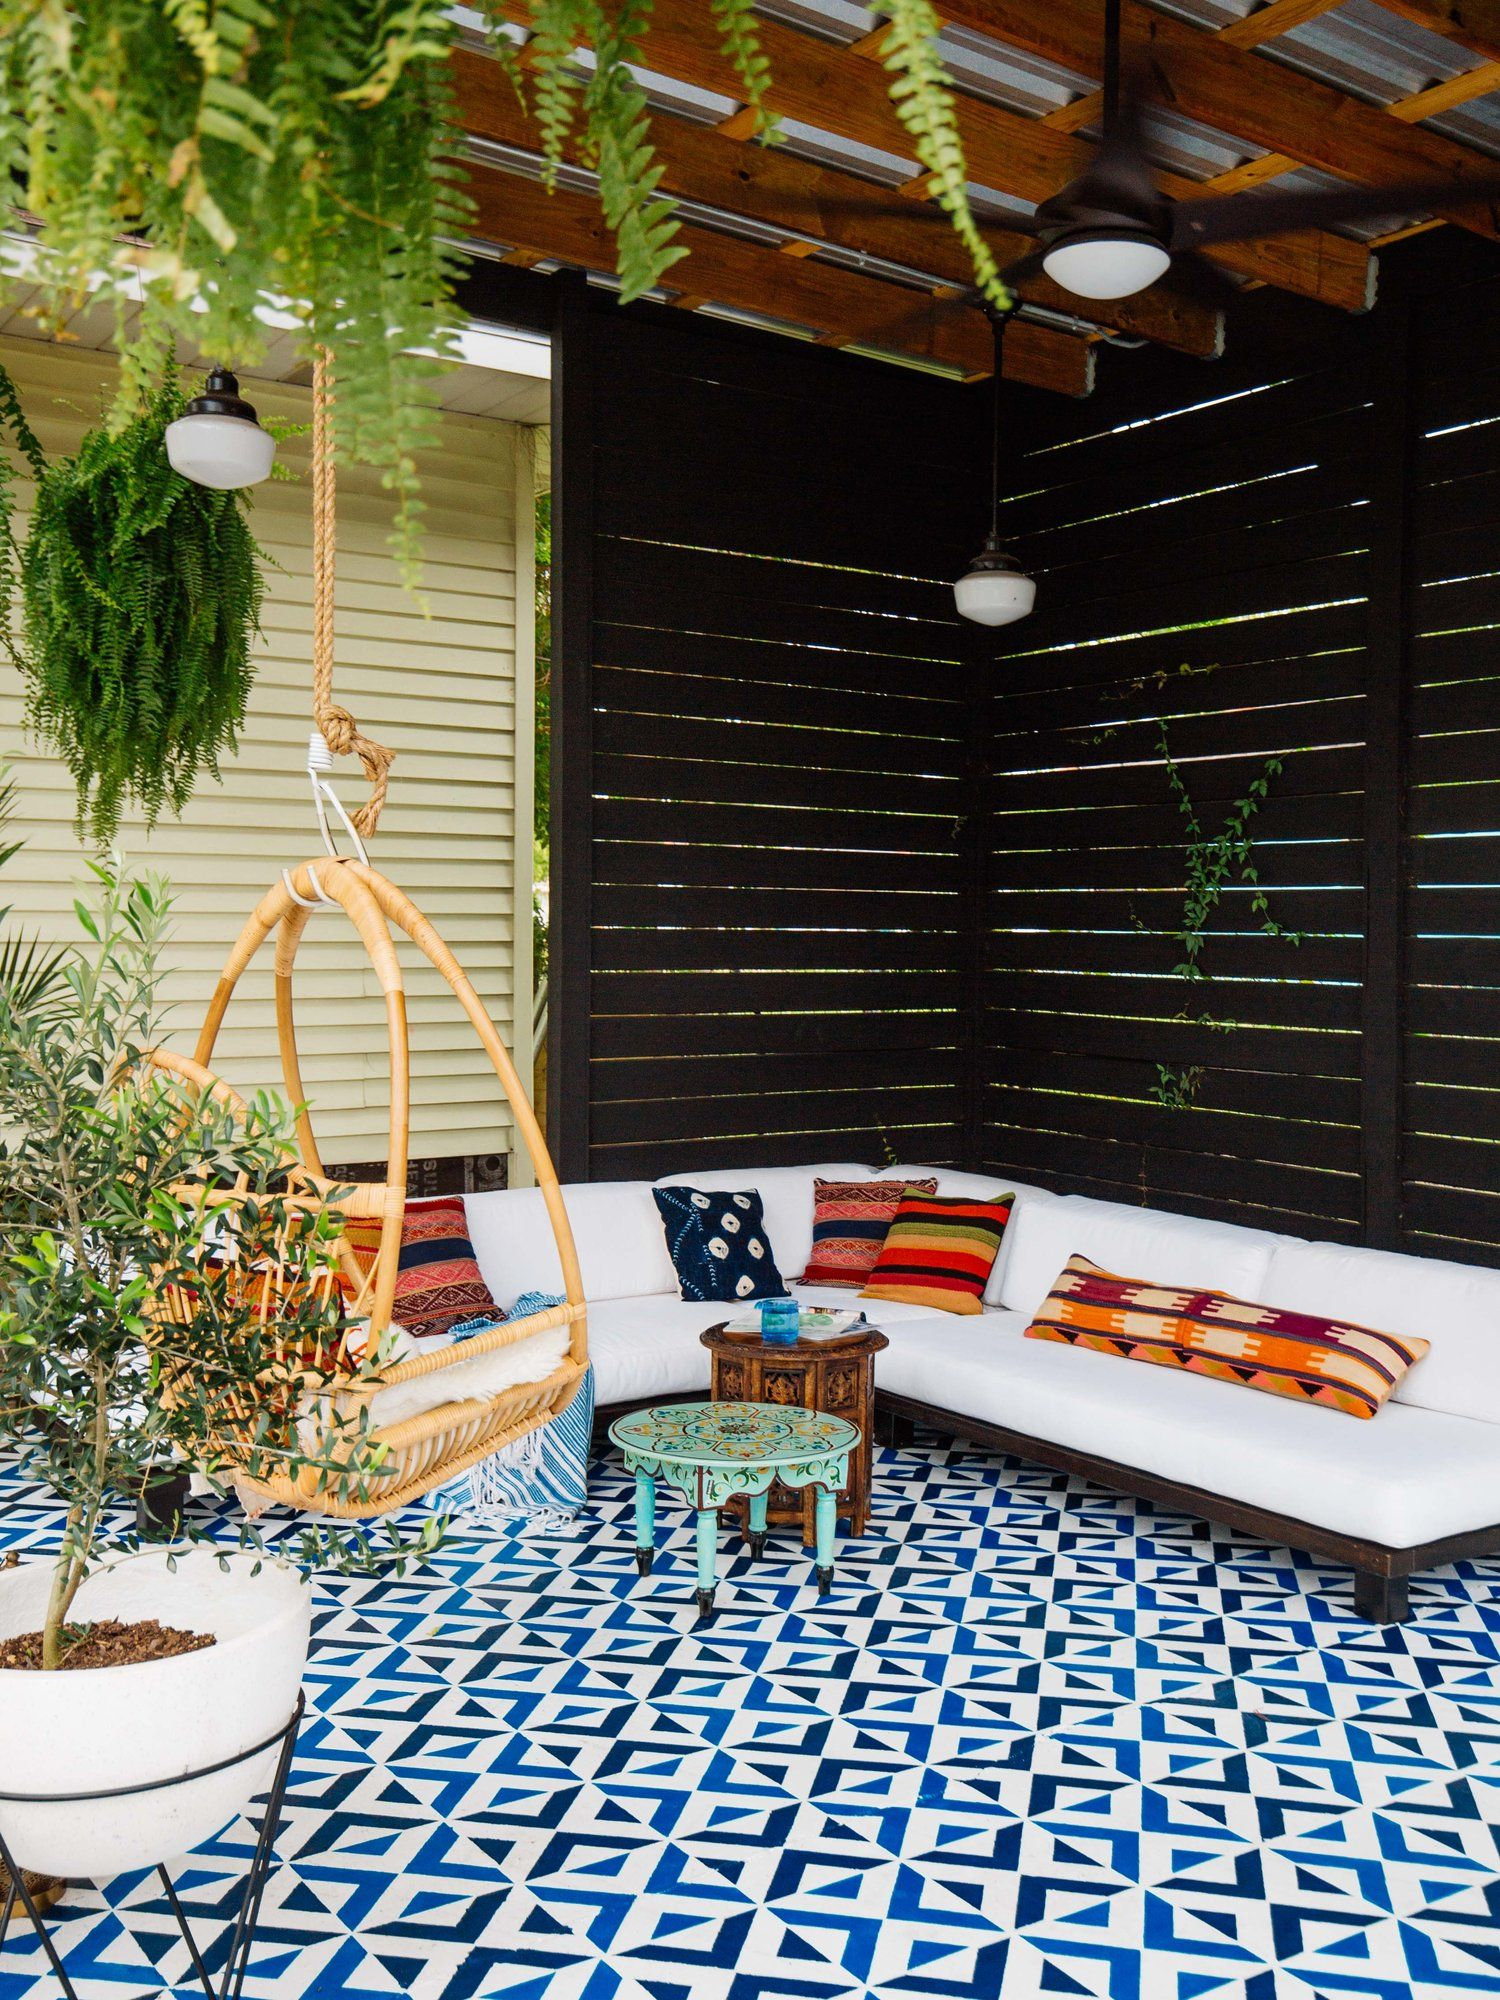 Diy Paint Concrete Patio All The Angles Moroccan Wall Stencil Hostel Interiors